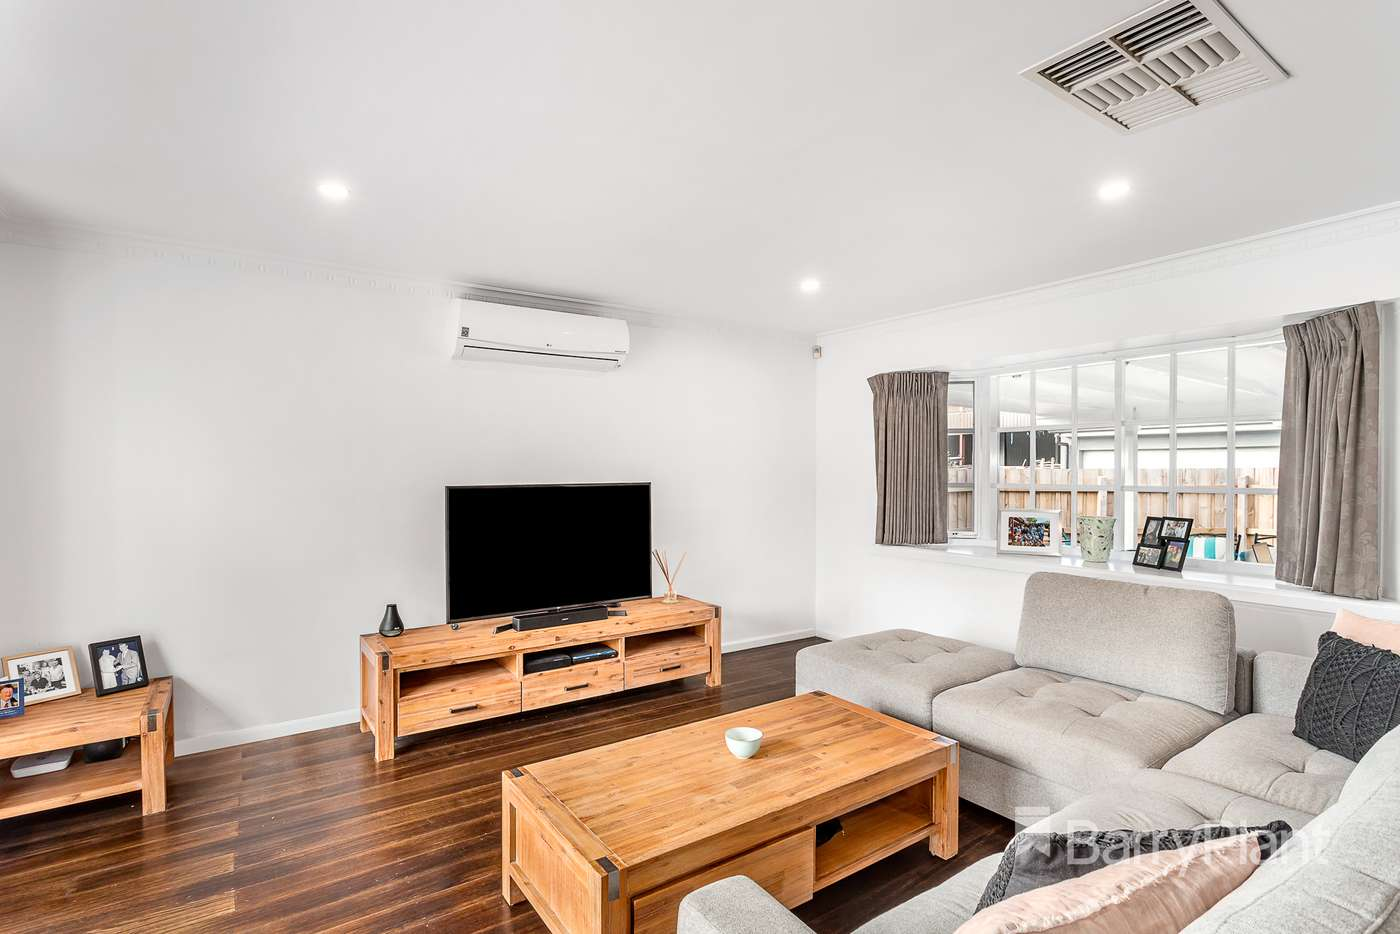 Fifth view of Homely house listing, 149 Liverpool Road, Kilsyth VIC 3137